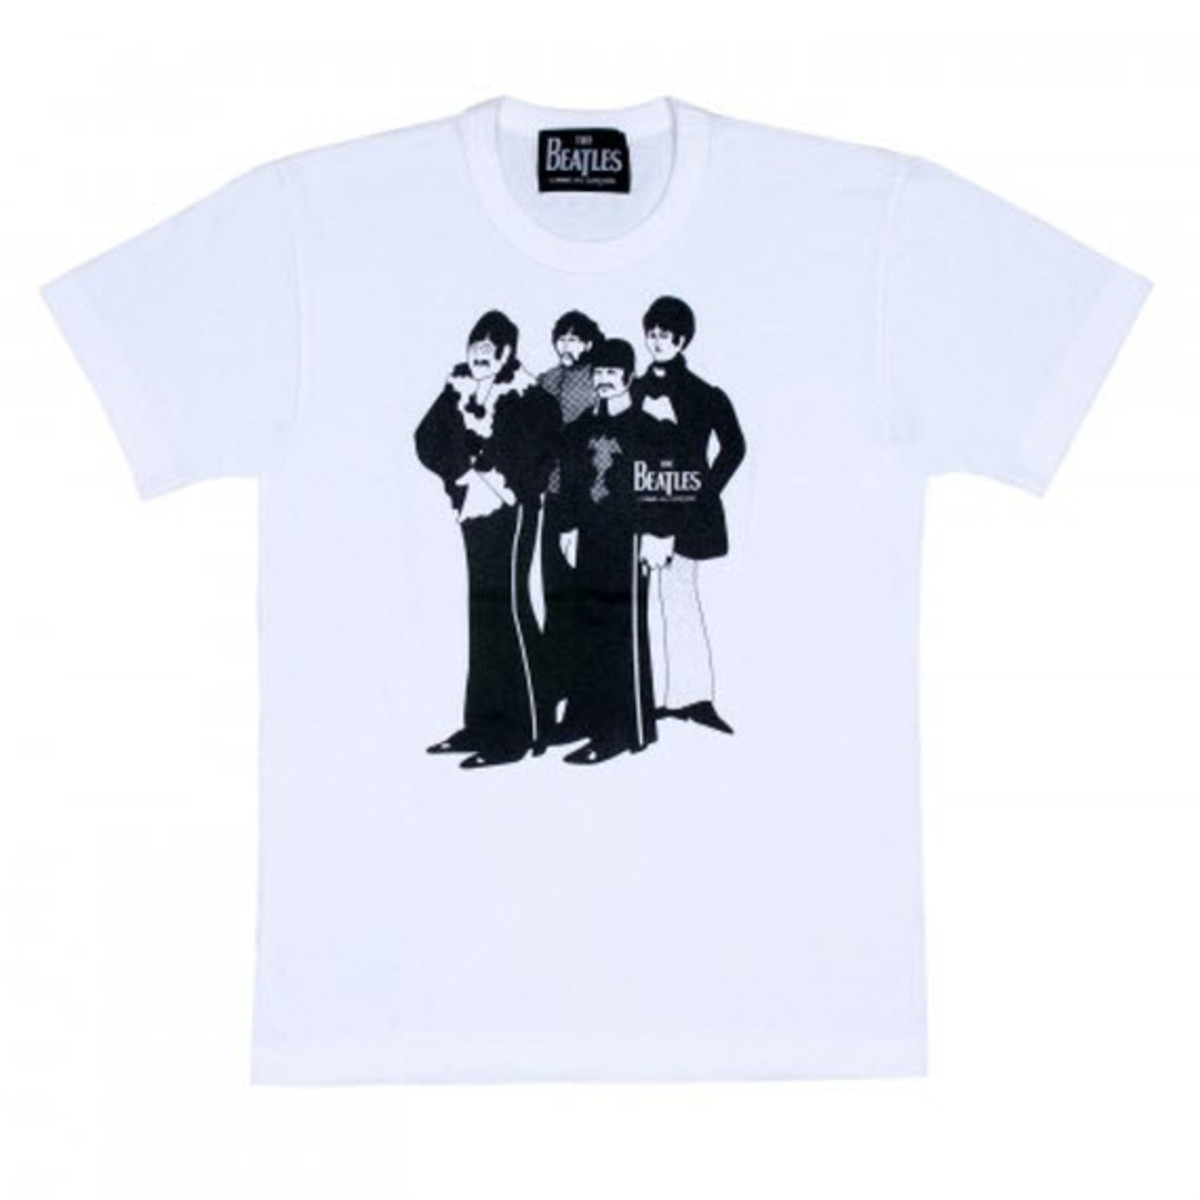 comme-des-garcons-x-the-beatles-the-beatles-springsummer-2013-capsule-collection-12